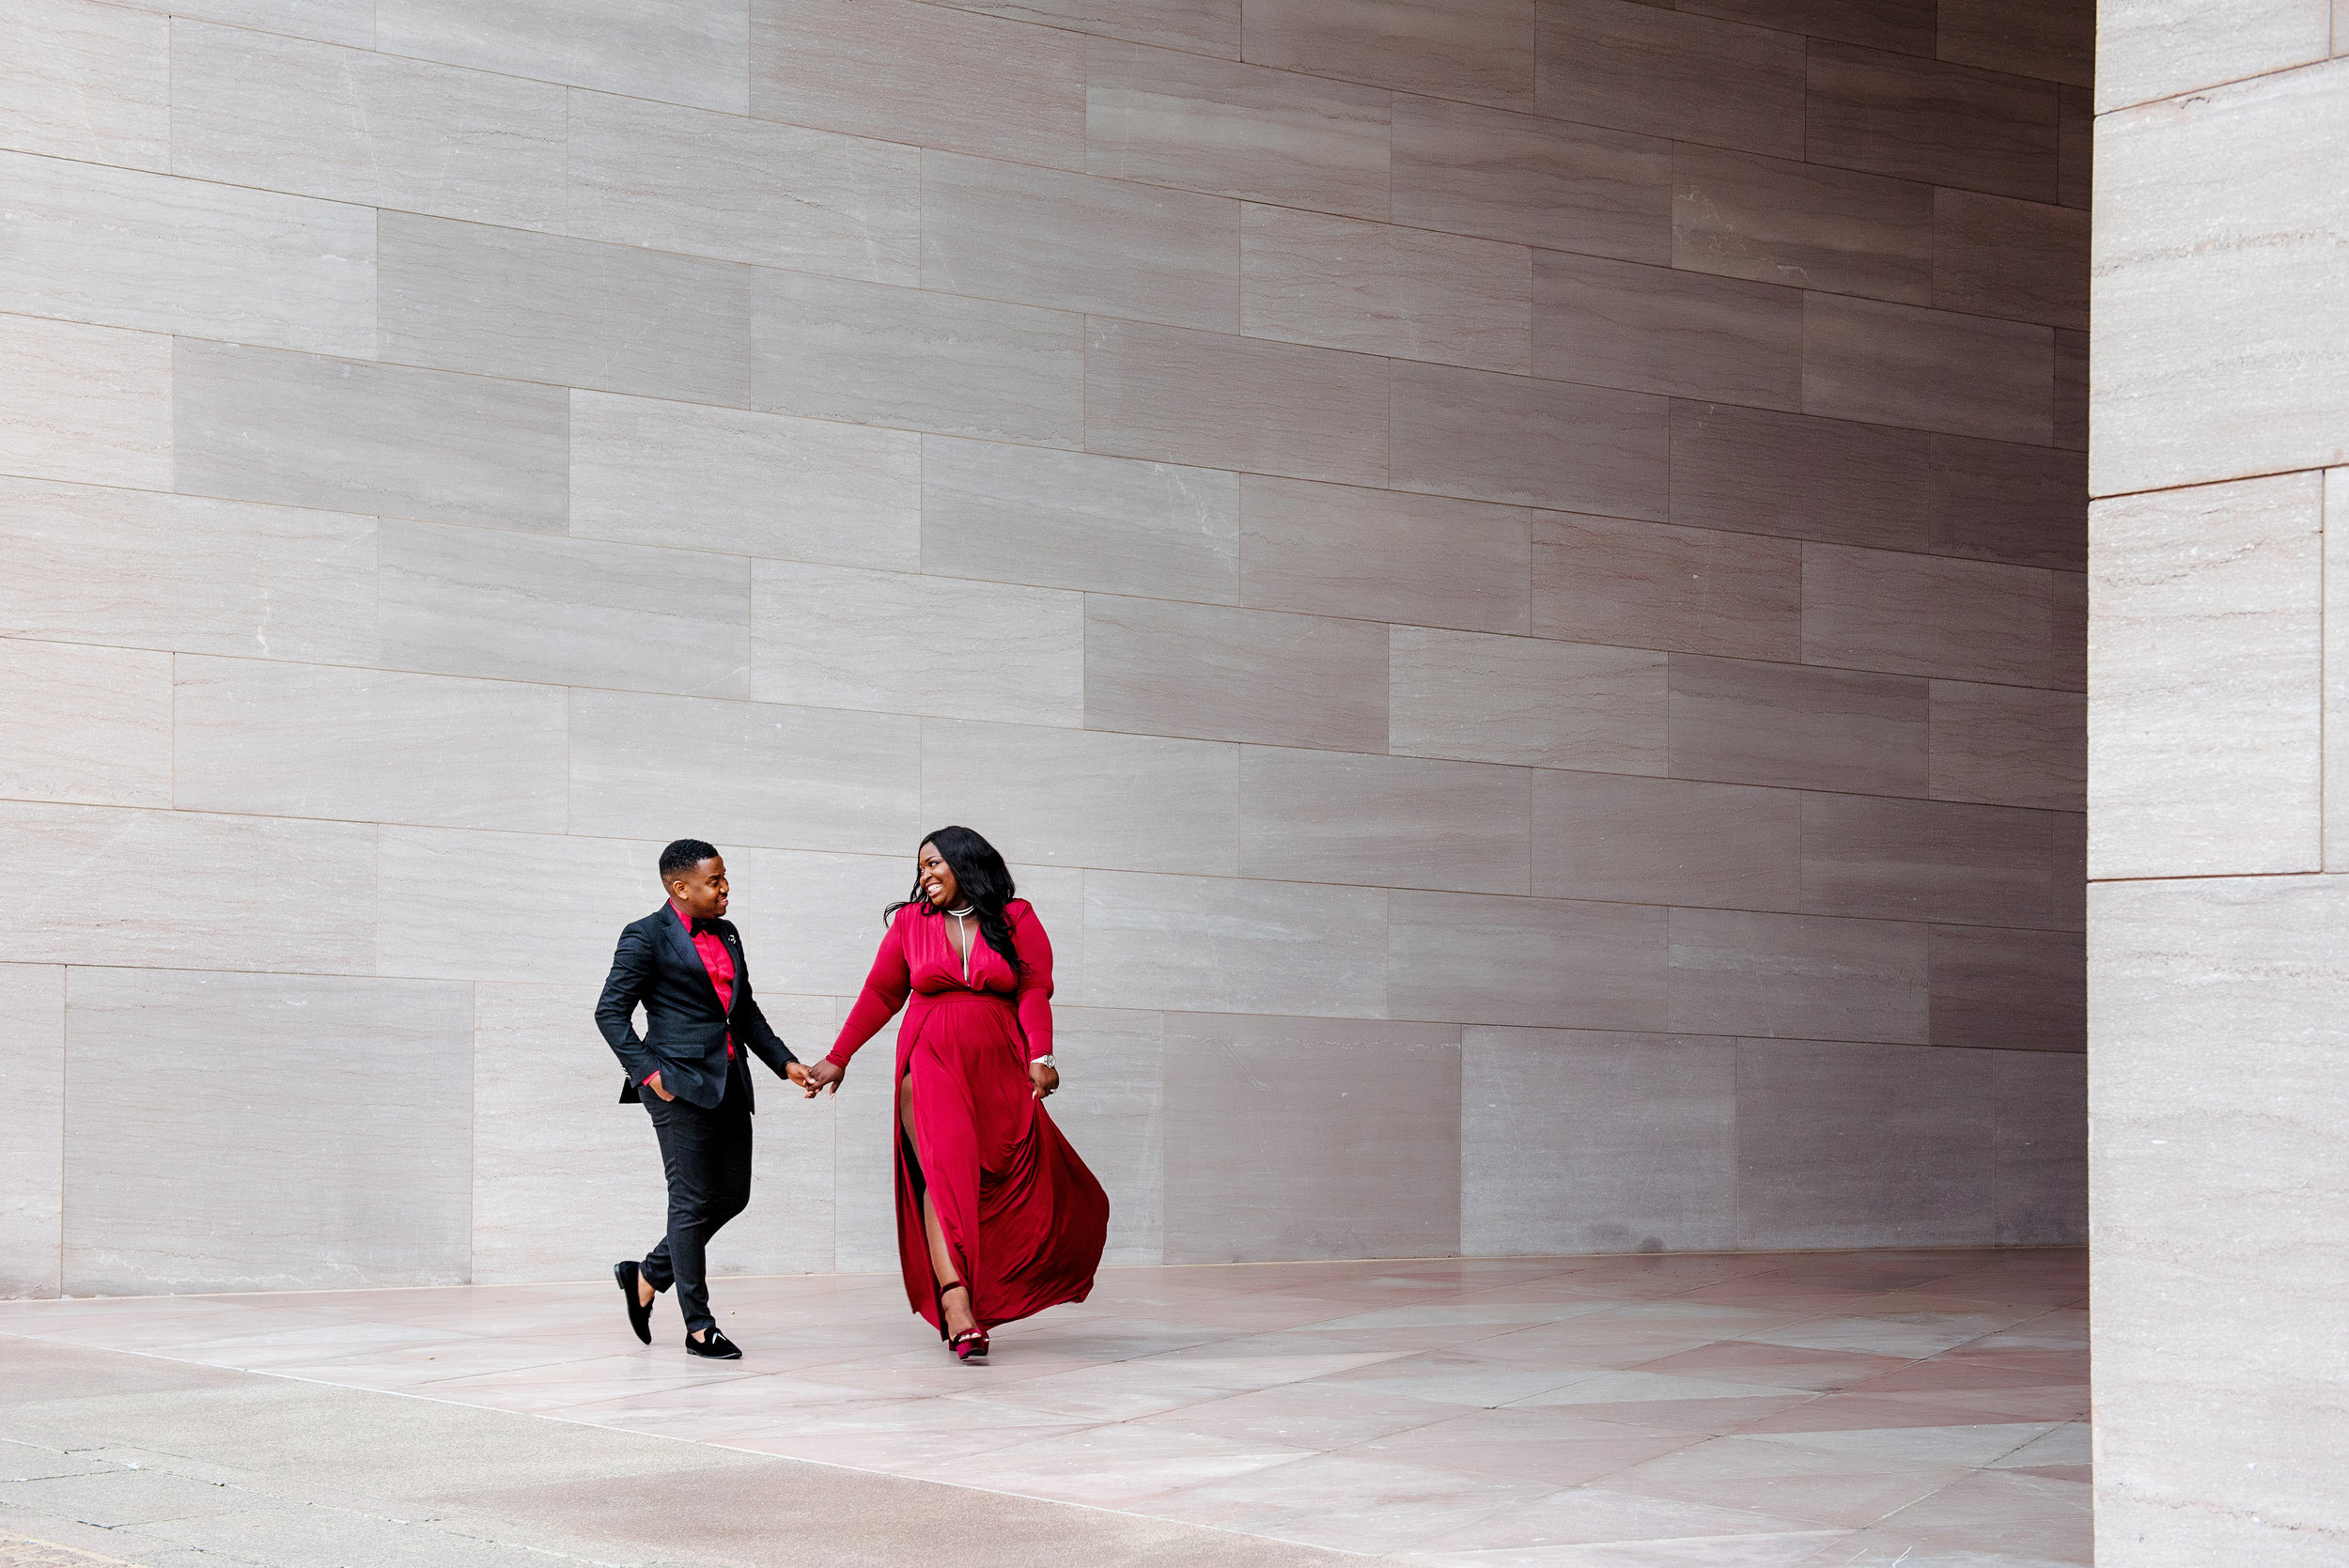 2018-06-11-Engagement Session-Jide Alakija-National Gallery of Art DC-Timmy and Bunmi-00412.jpg